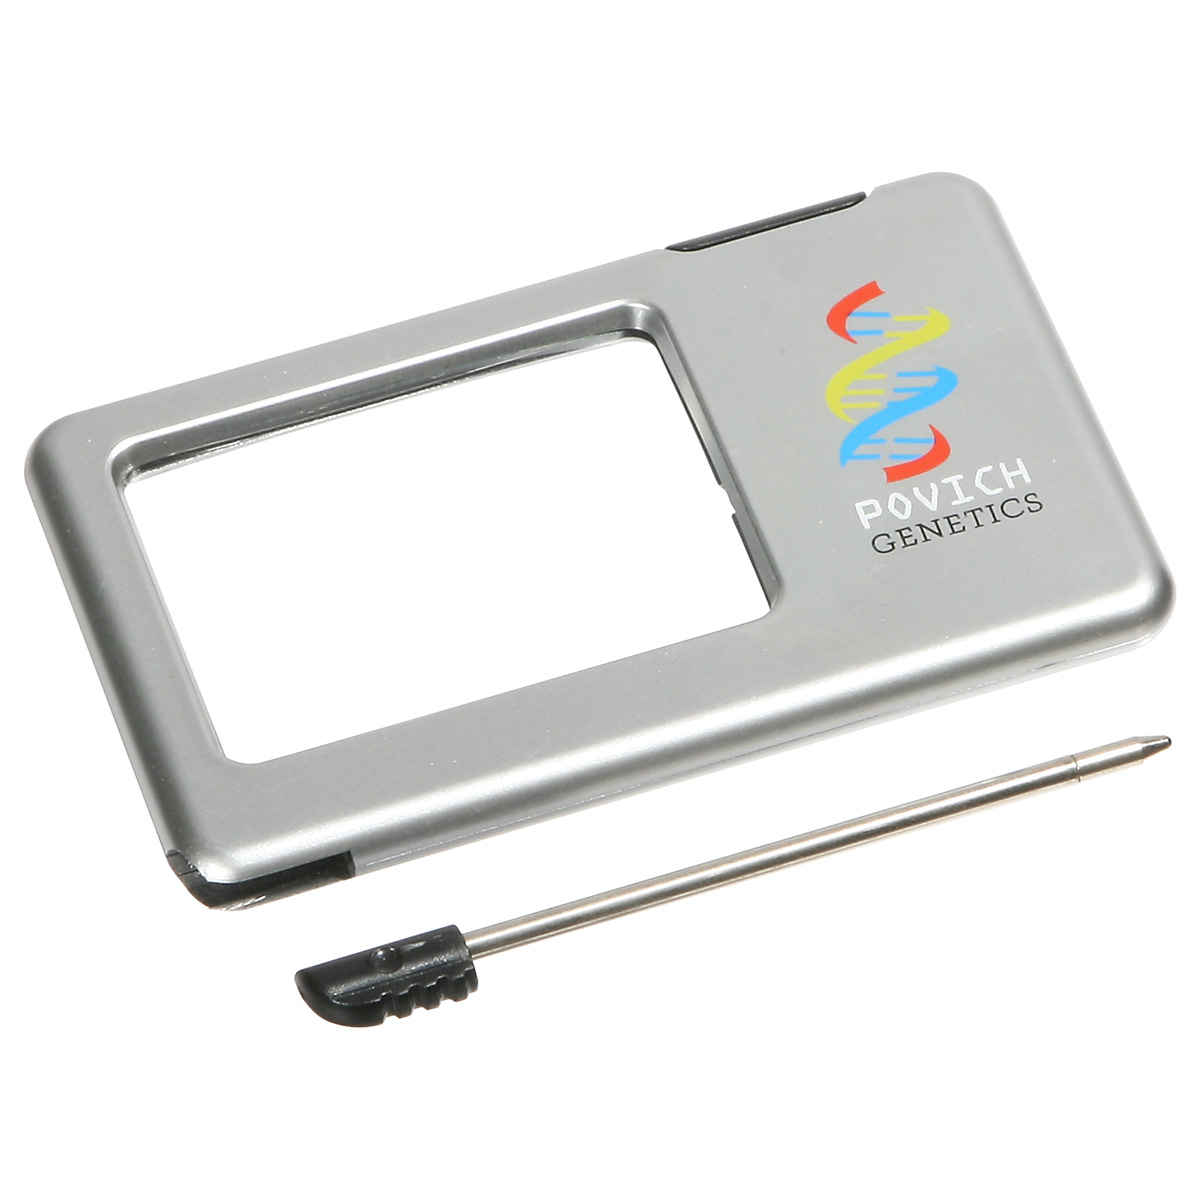 Silver Thin Light-Up Magnifier, WPC-LM10, 1 Colour Imprint